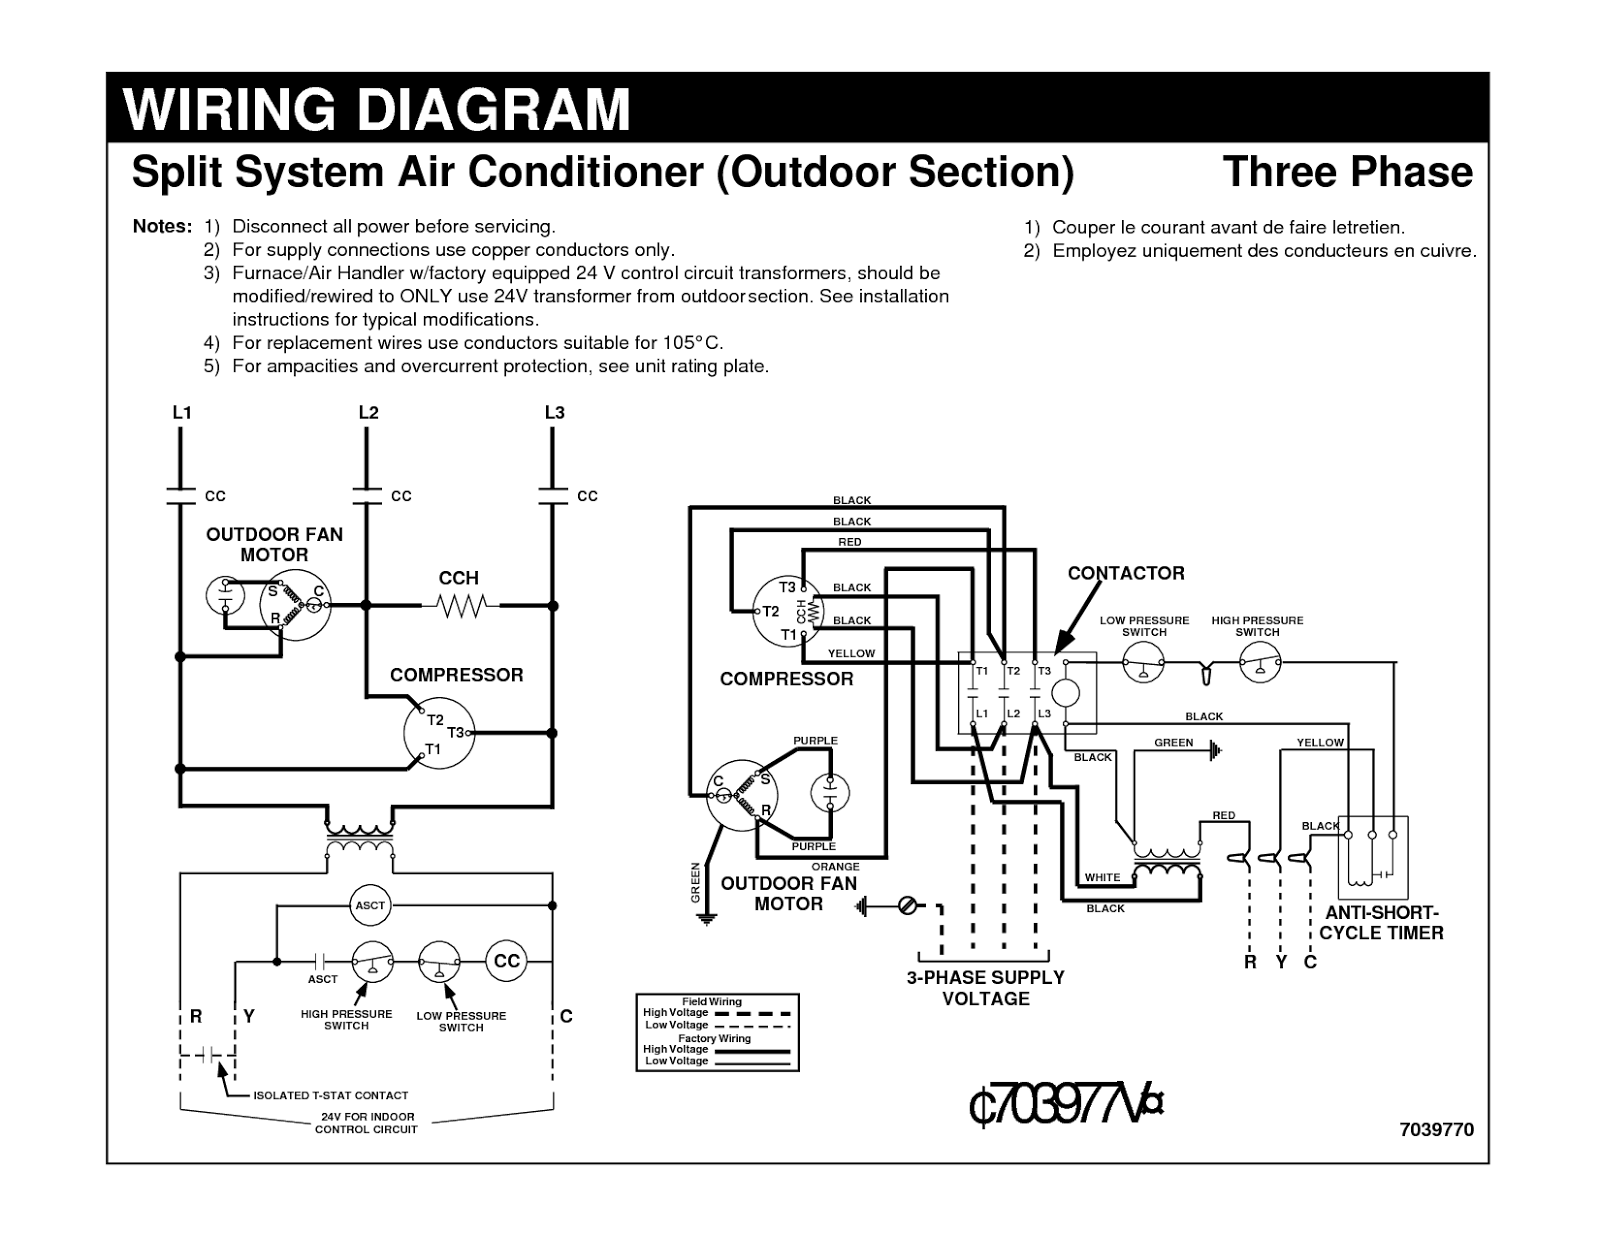 Electrical Wiring Diagrams for Air Conditioning Systems – Part One ~  Electrical KnowhowElectrical Knowhow